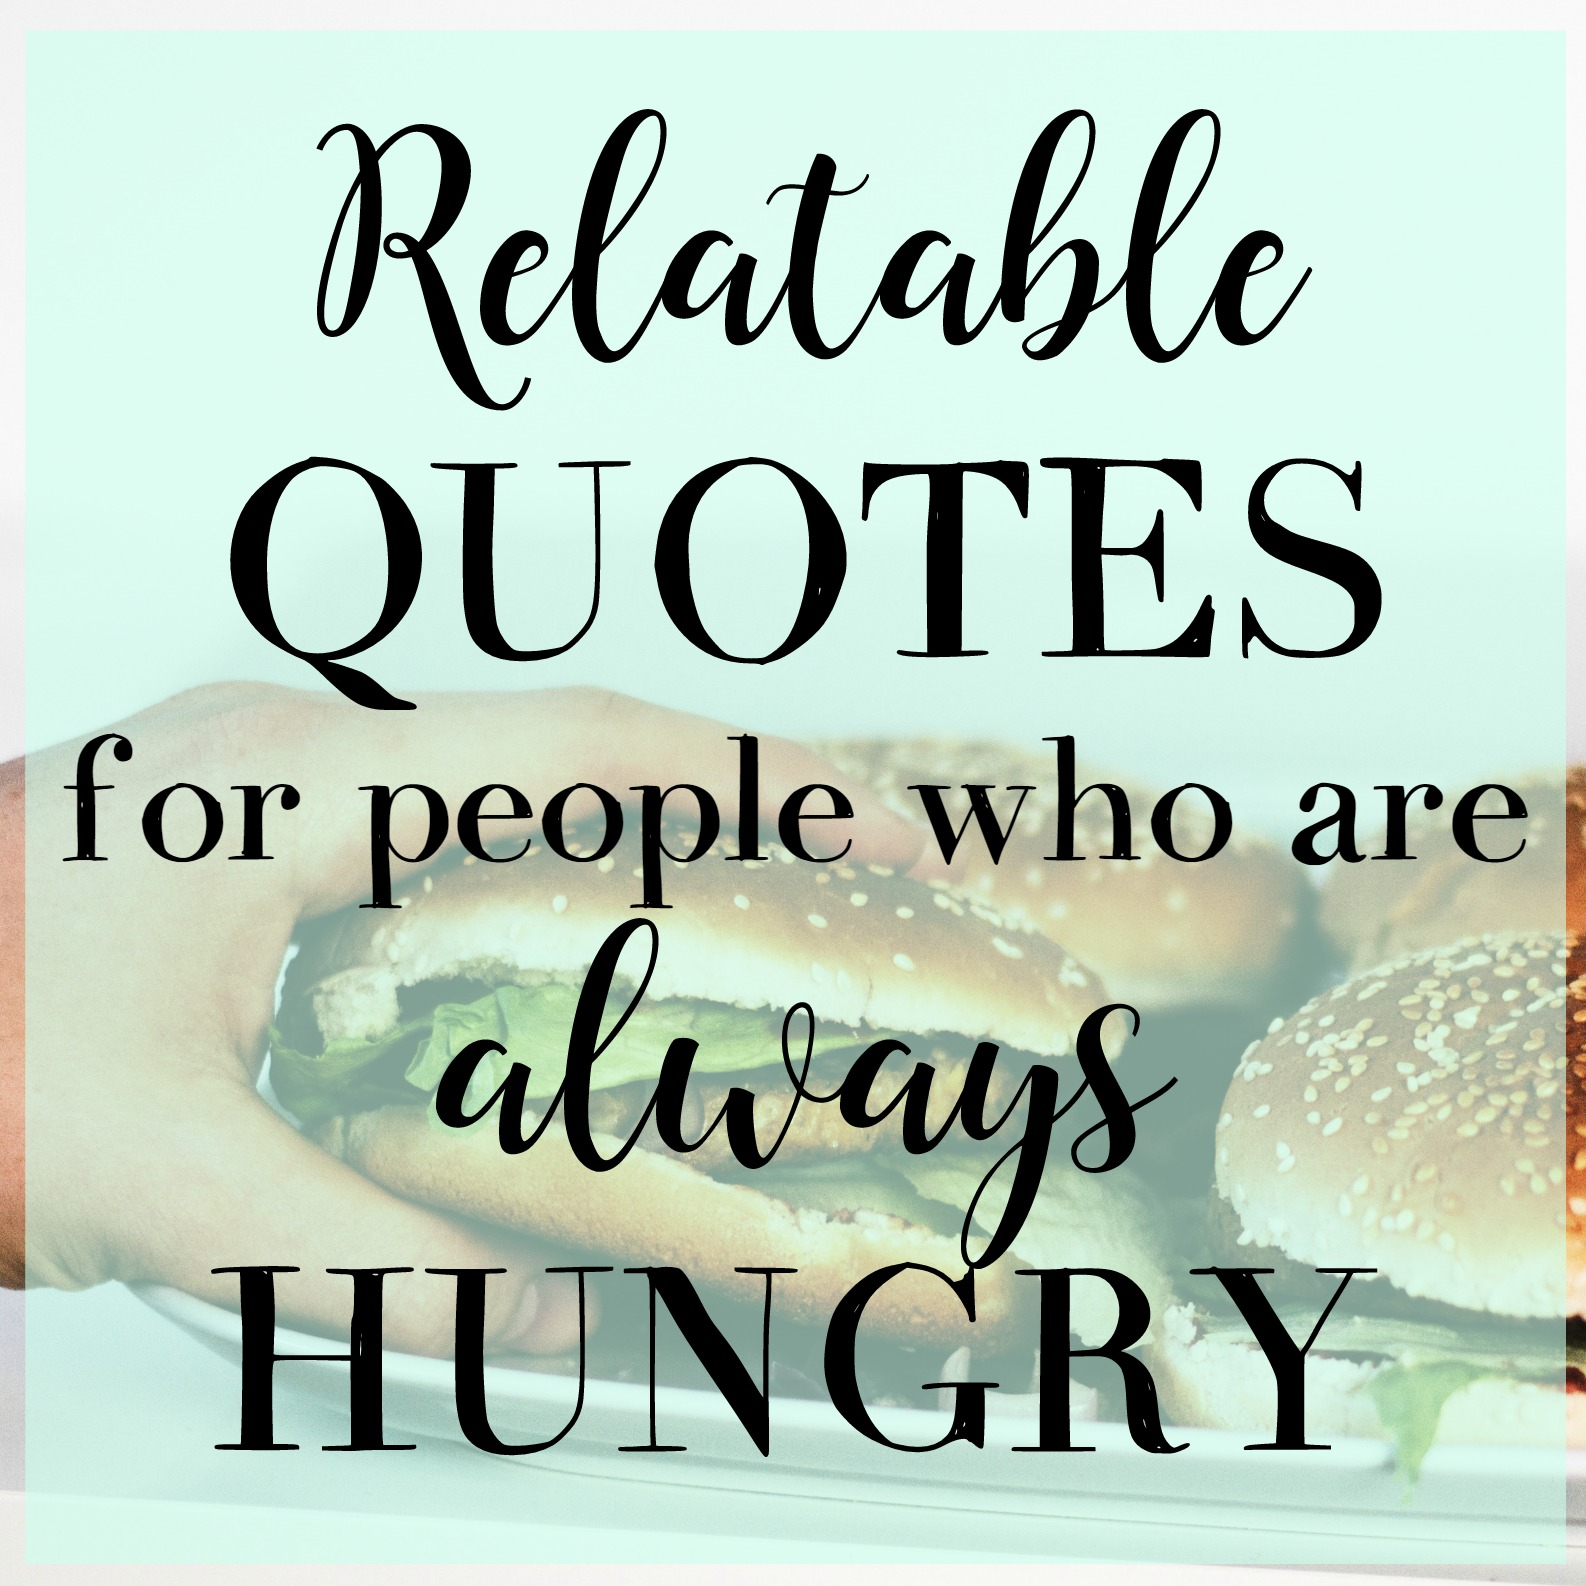 Relatable Quotes Relatable Quotes For People Whoa Re Always Hungry Gettin' My